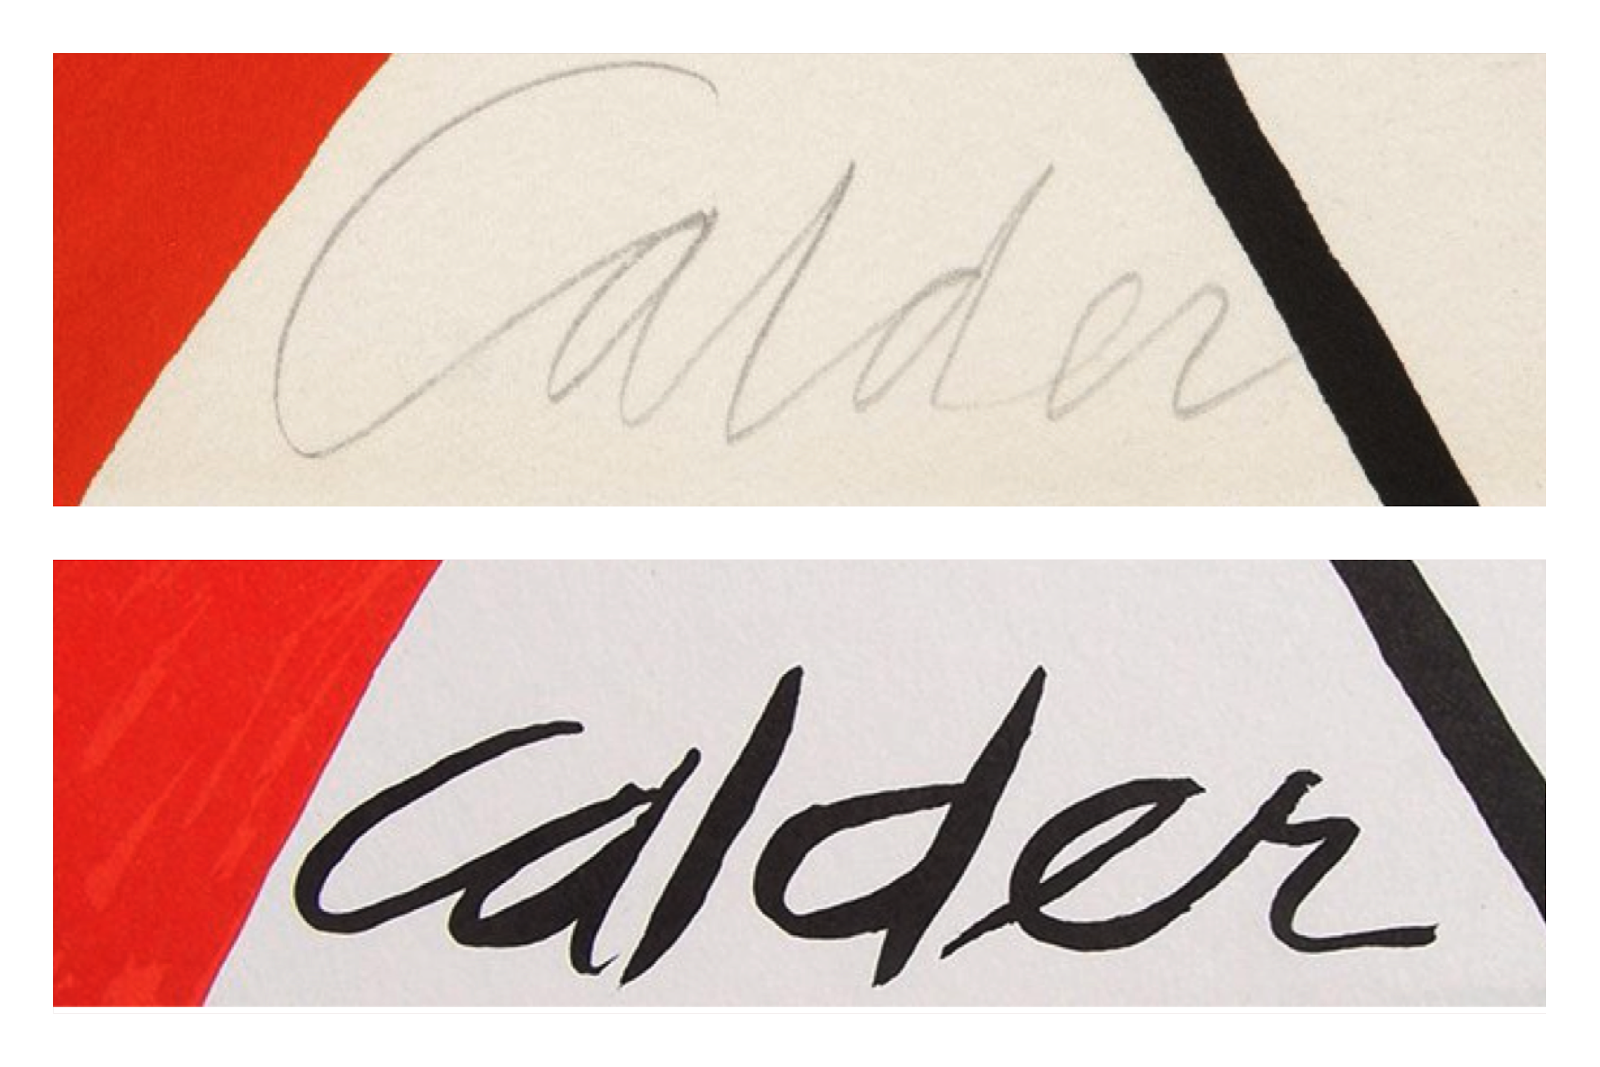 Two Examples of Counterfeit Calder titled  Candy Canes